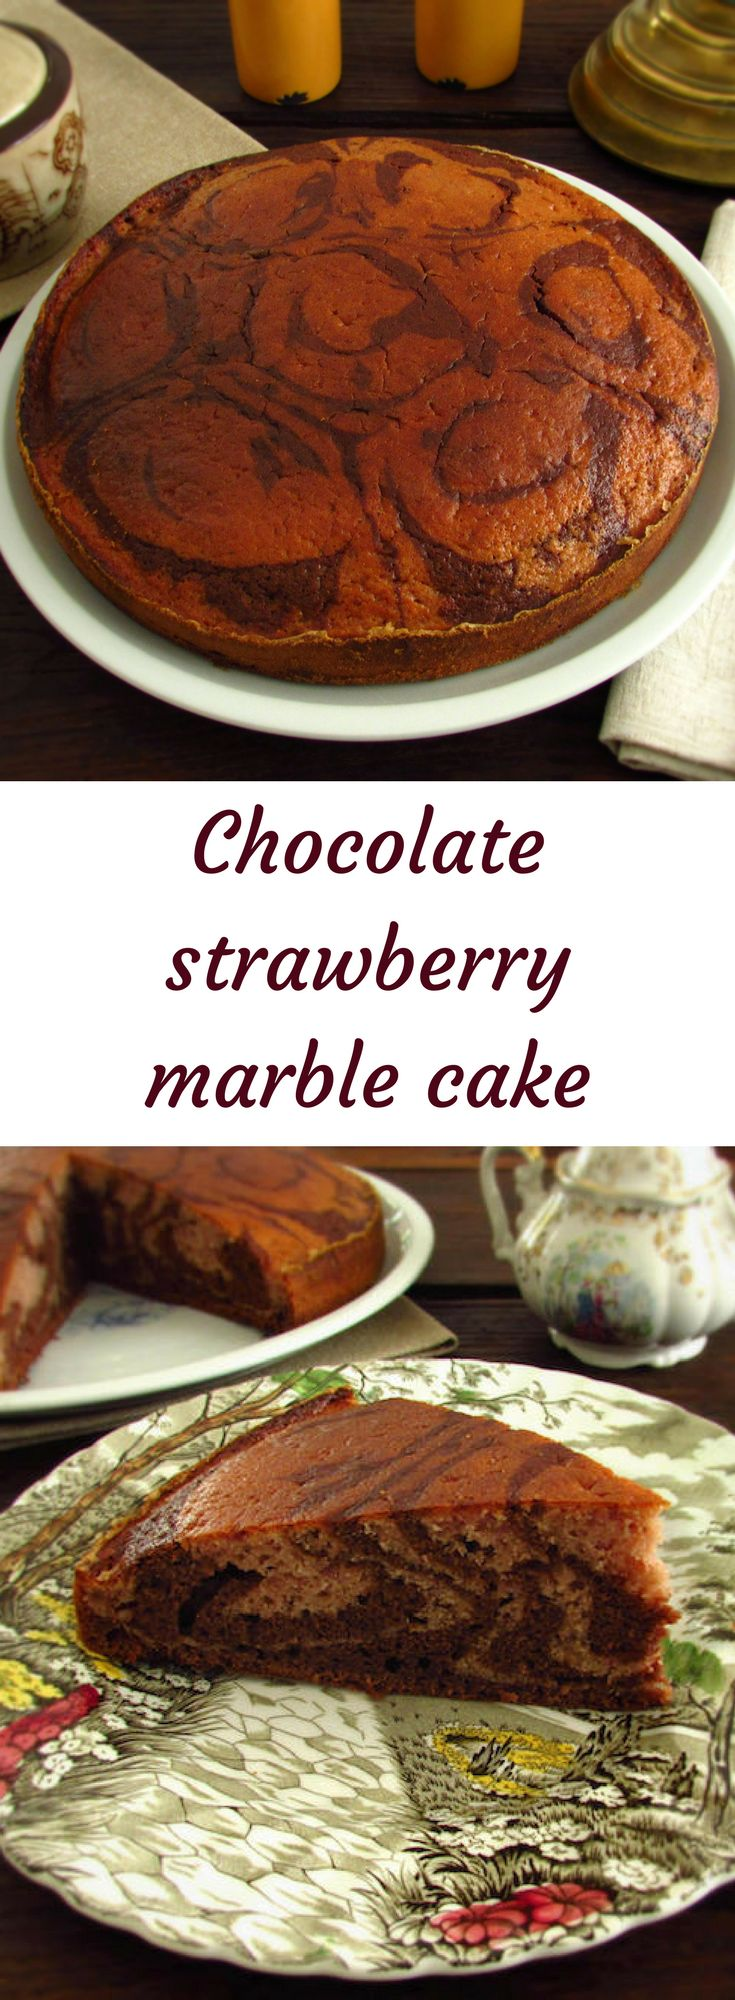 Chocolate and strawberry marble cake | Food From Portugal. Cake with a delicious blend of flavors, confectioned with flour, eggs, sugar, chocolate powder, Port wine and strawberries. #chocolate #cake #recipe